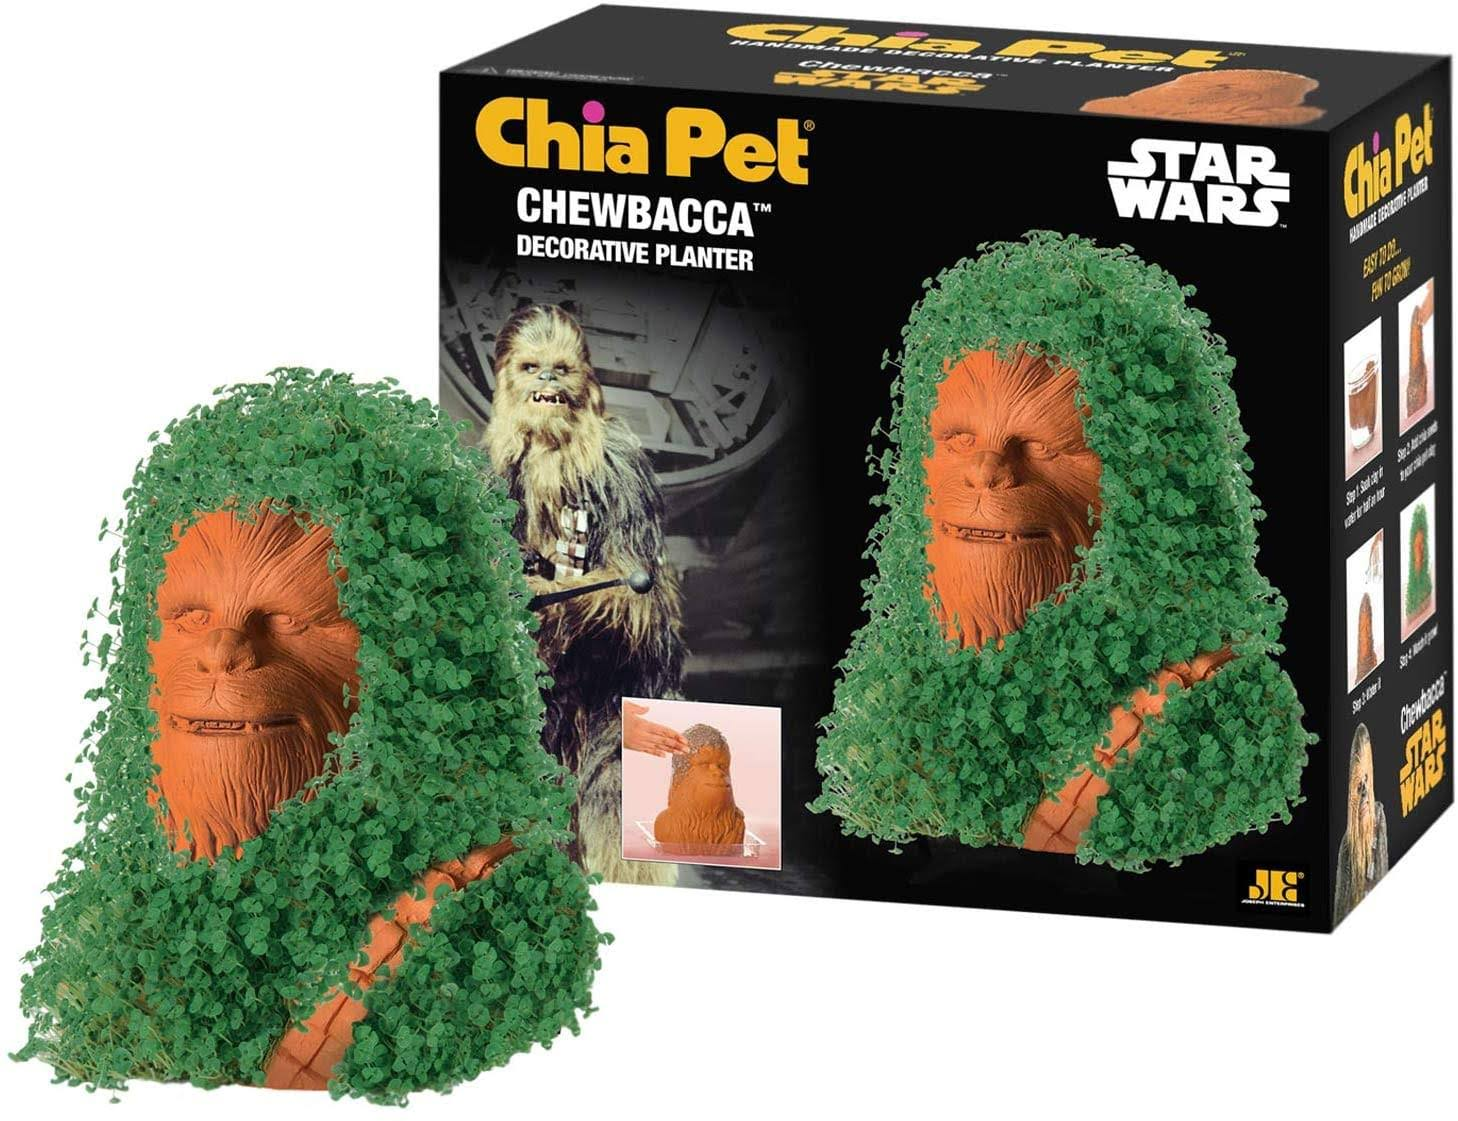 Star Wars Chewbacca Chia Pet Decorative Planter